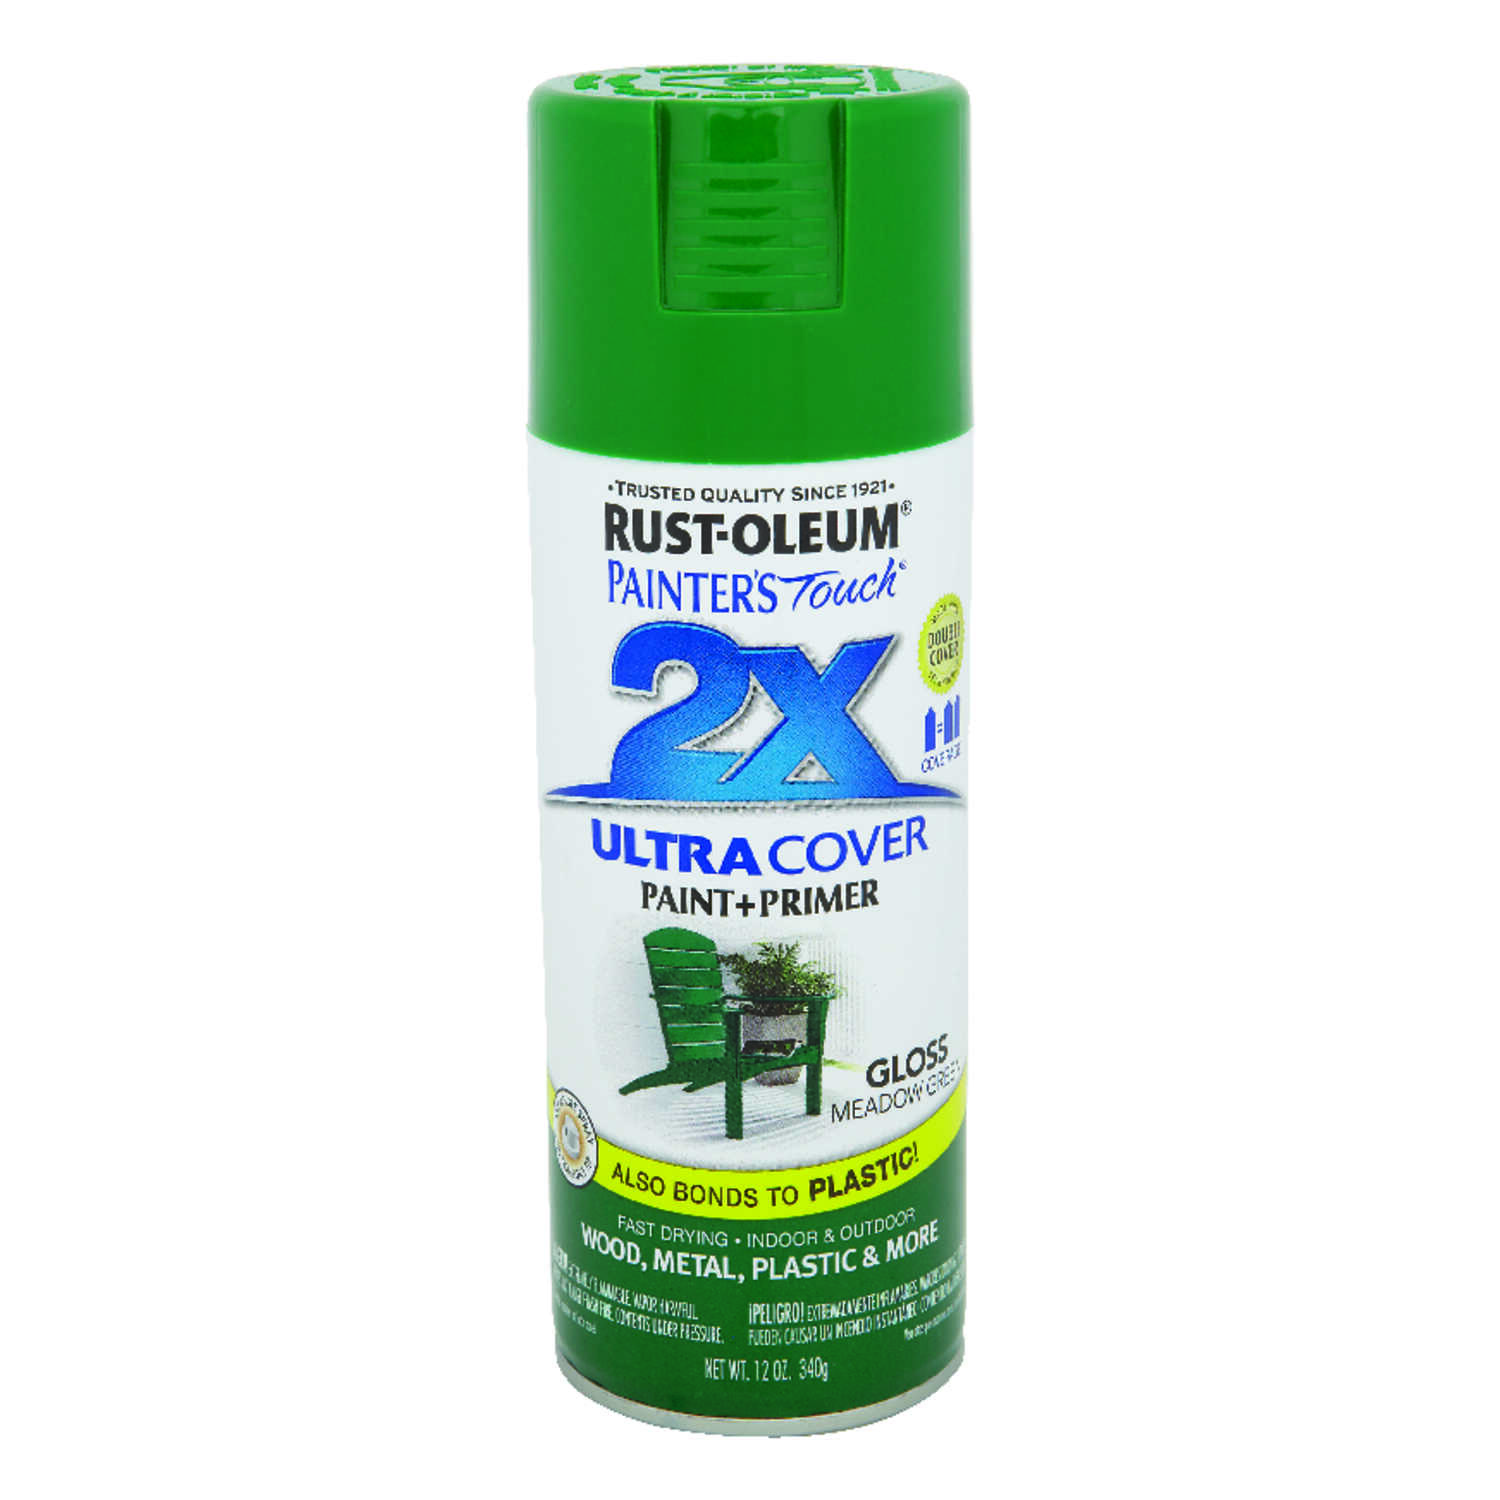 Rust-Oleum  Painter's Touch Ultra Cover  Gloss  Meadow Green  12 oz. Spray Paint